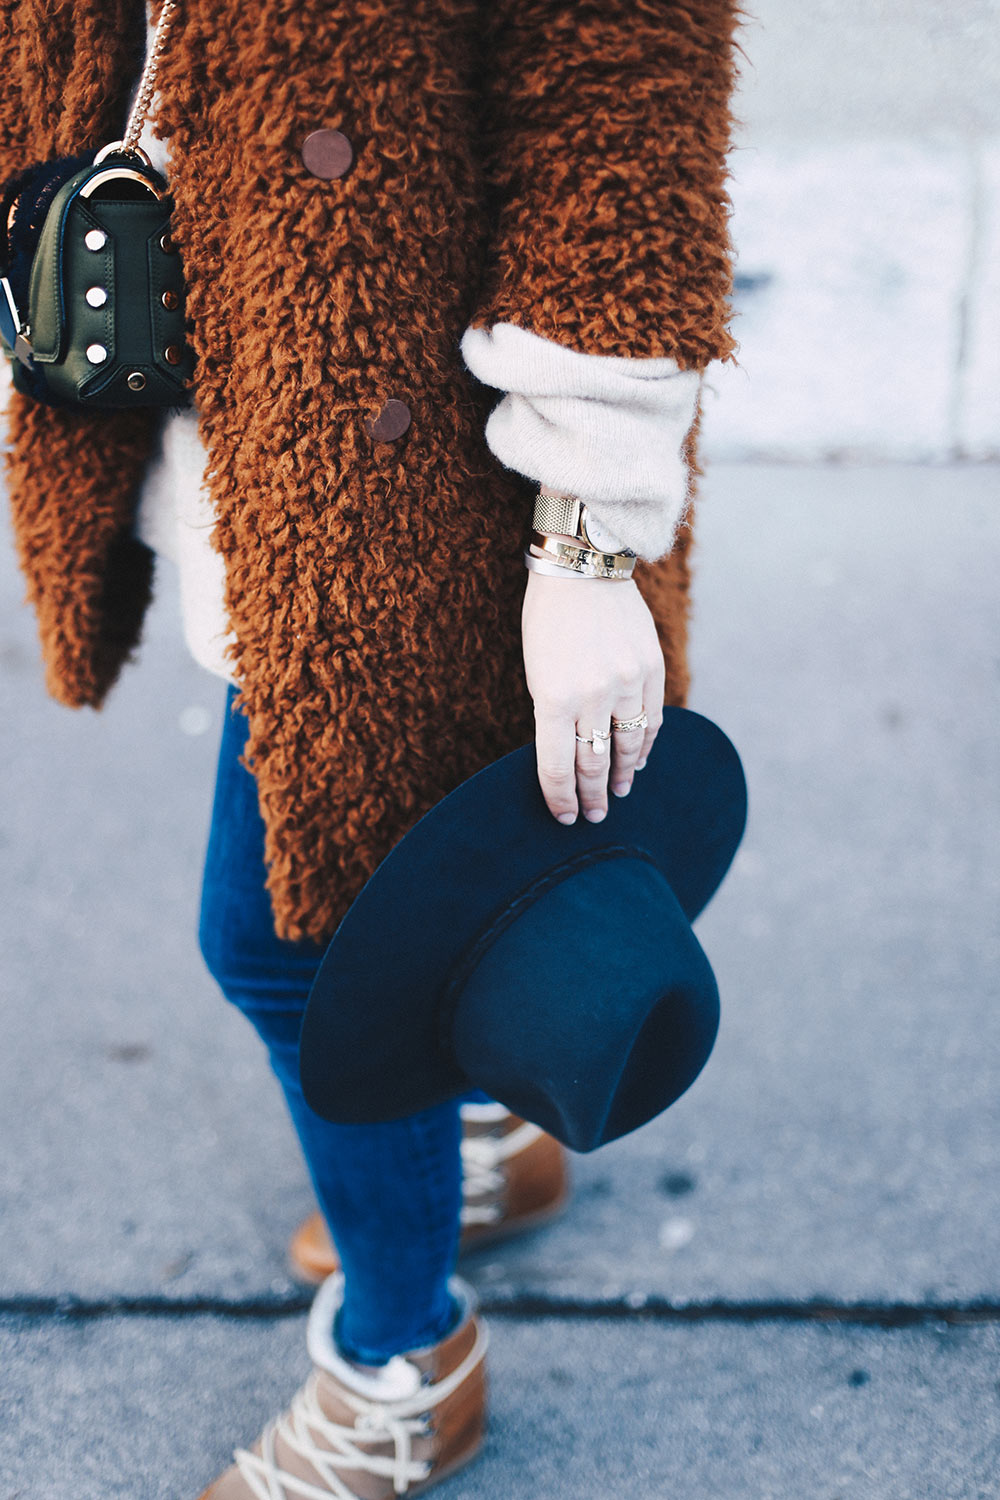 Teddyfell Jacke, Winteroutfit, Isabel Marant Nowles Boots, Jimmy Choo Lockett Petite, Vintage Designer Shopping, Streetstyle, Modeblog, Fashion Blog, Outfit Ideen, whoismocca.com